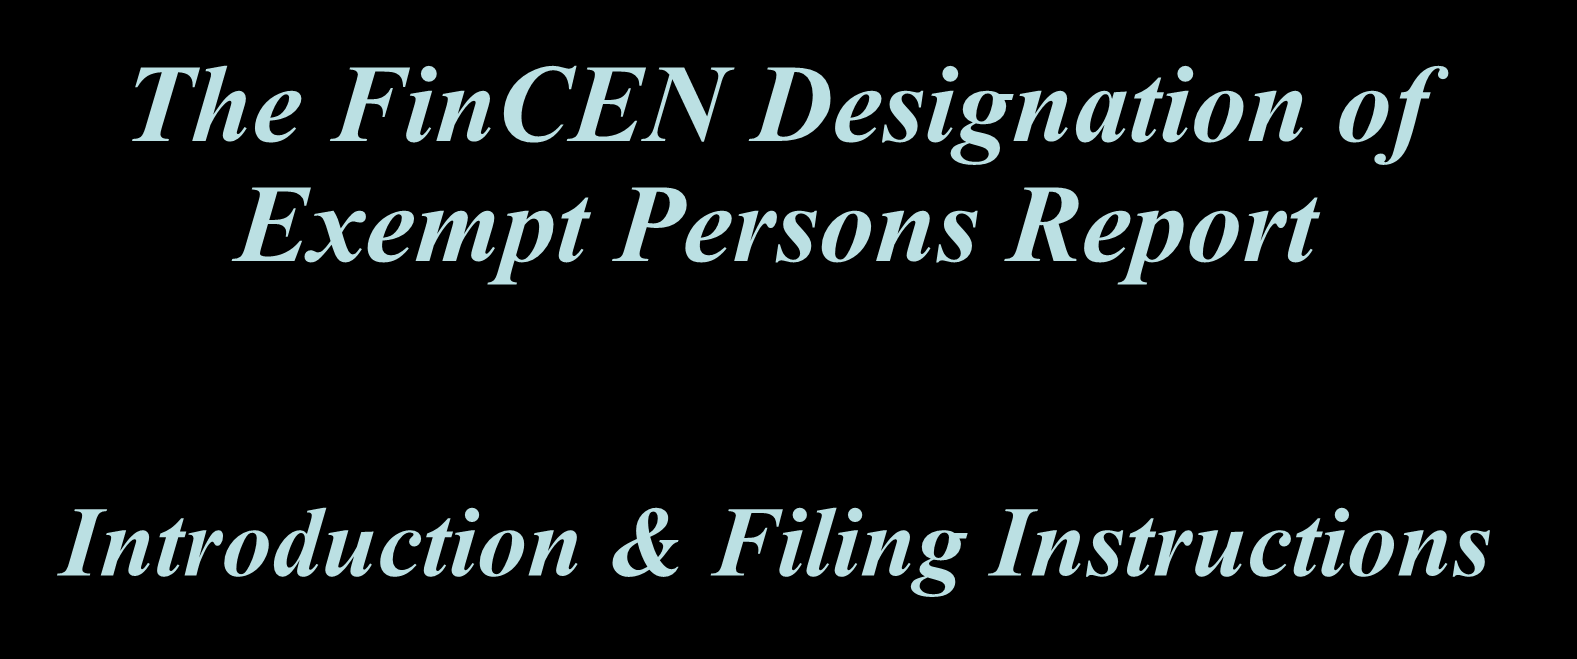 The FinCEN Designation of Exempt Persons